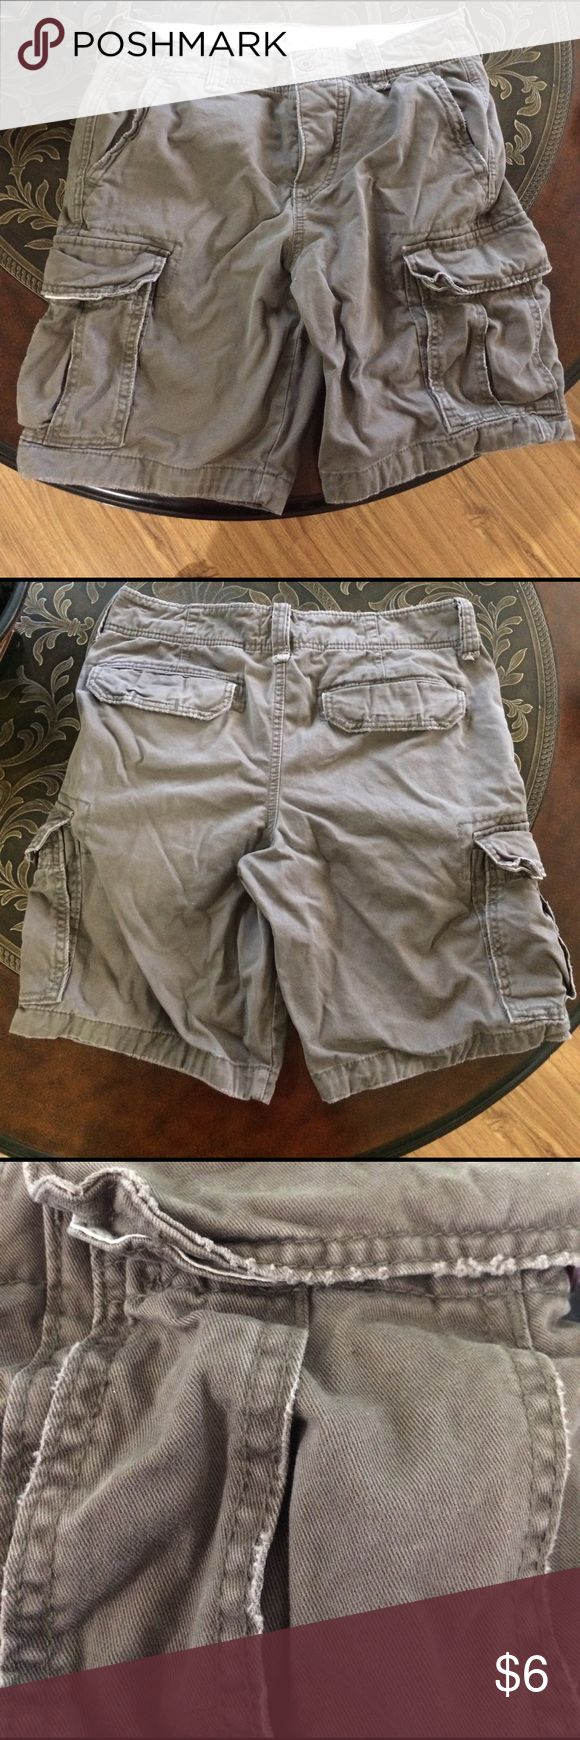 Men's Hollister 31 Waist Cargo Shorts Used Hollister Cargo Shorts. No missing buttons. Destroyed style with slight fraying on edges/ seams as pictured. Hollister Shorts Cargo